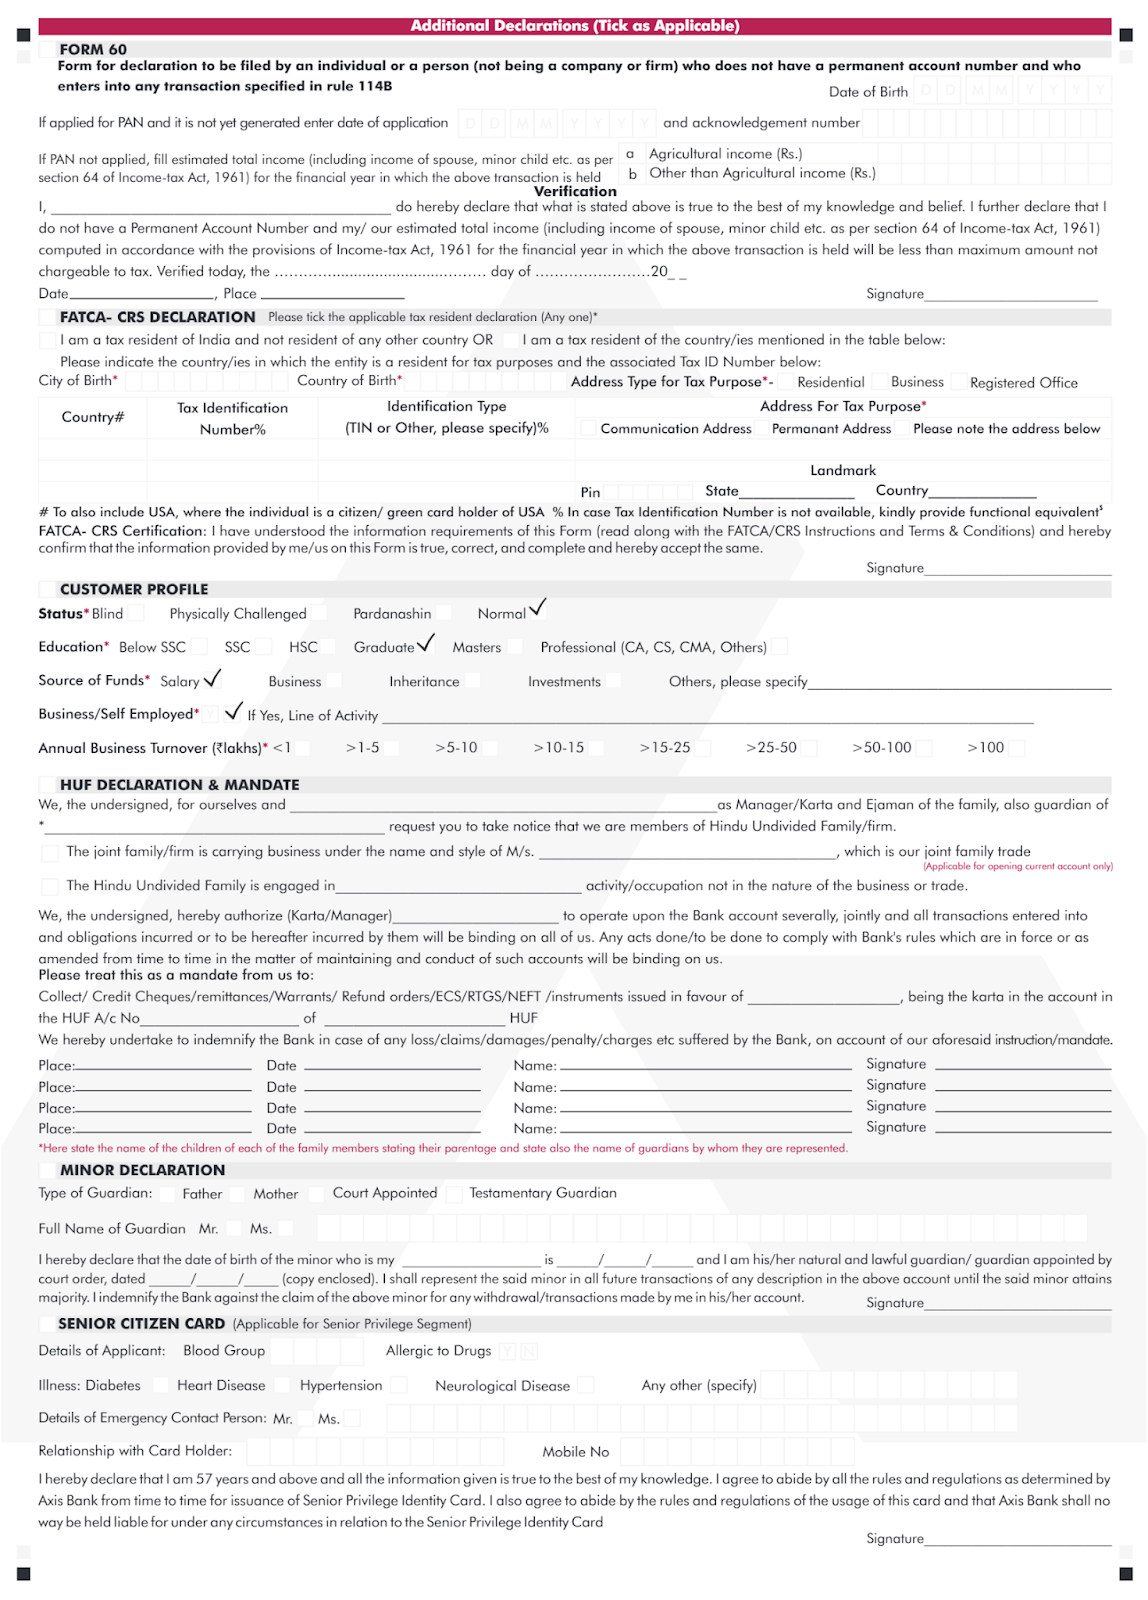 axis bank address updation form